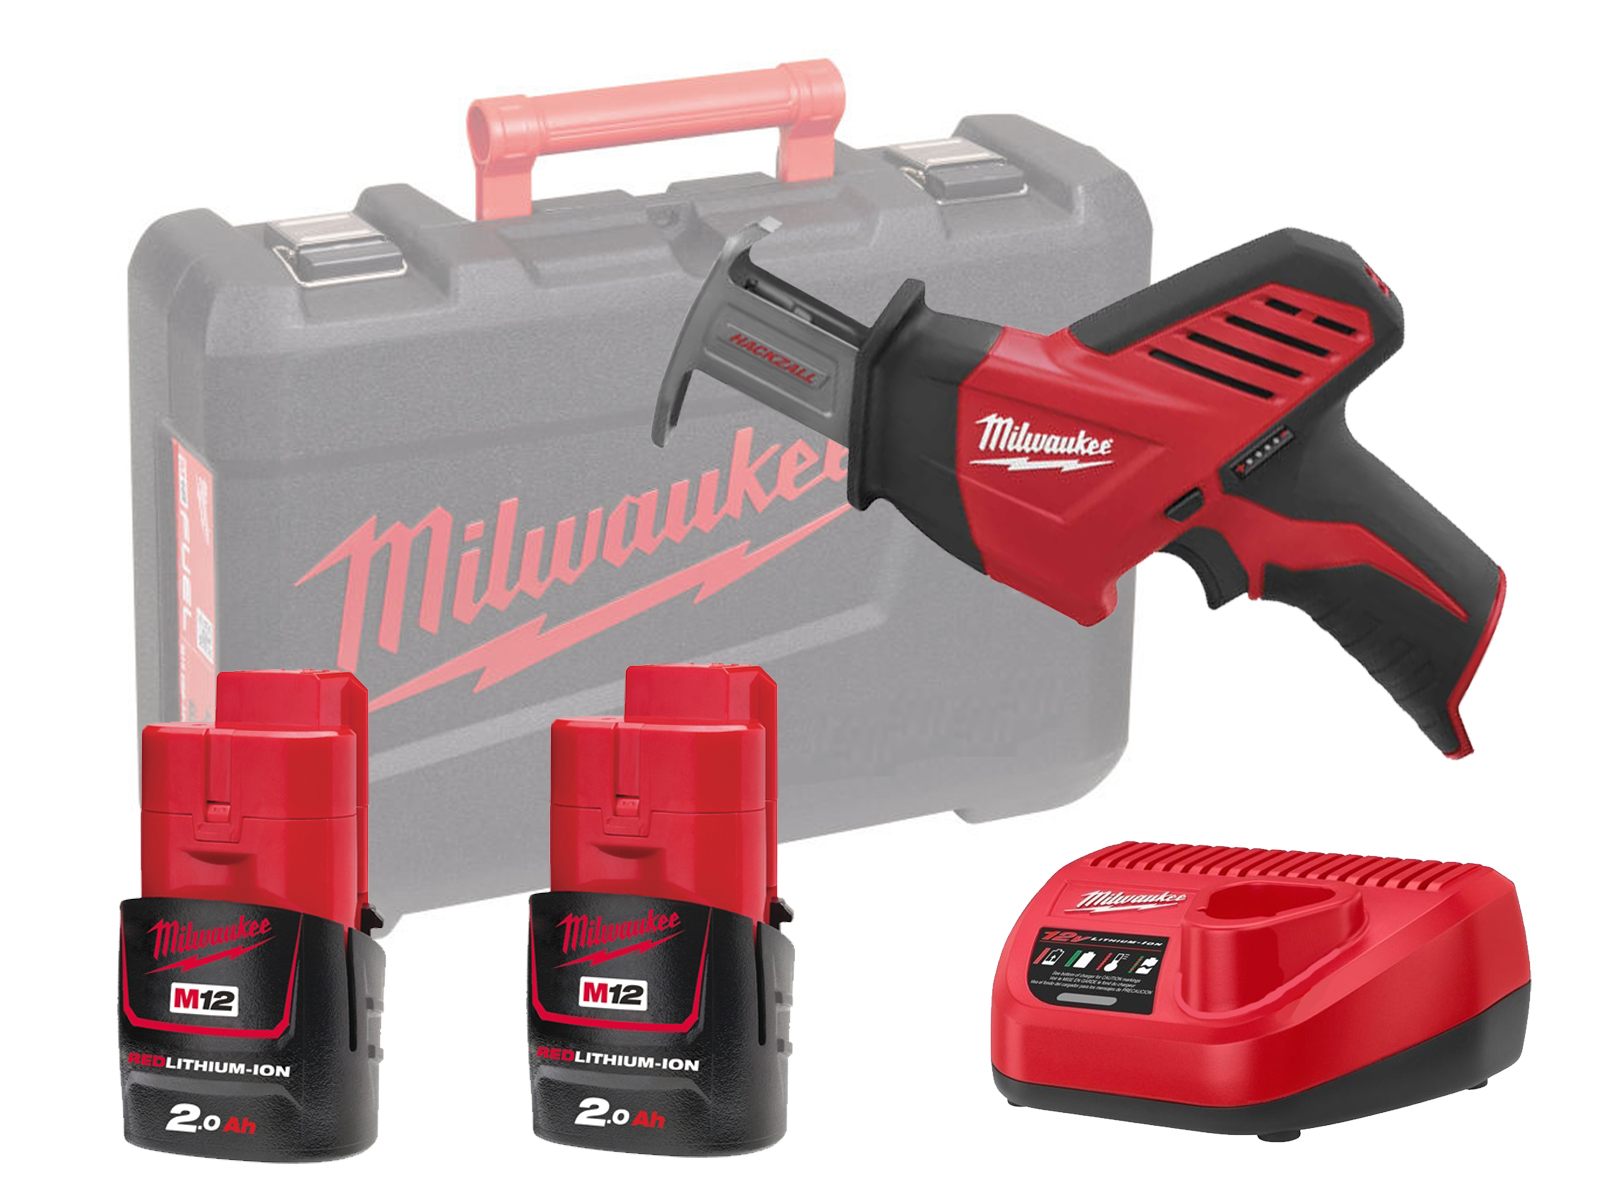 MILWAUKEE 12V COMPACT BRUSHED HACKZALL - C12HZ - 2.0AH PACK